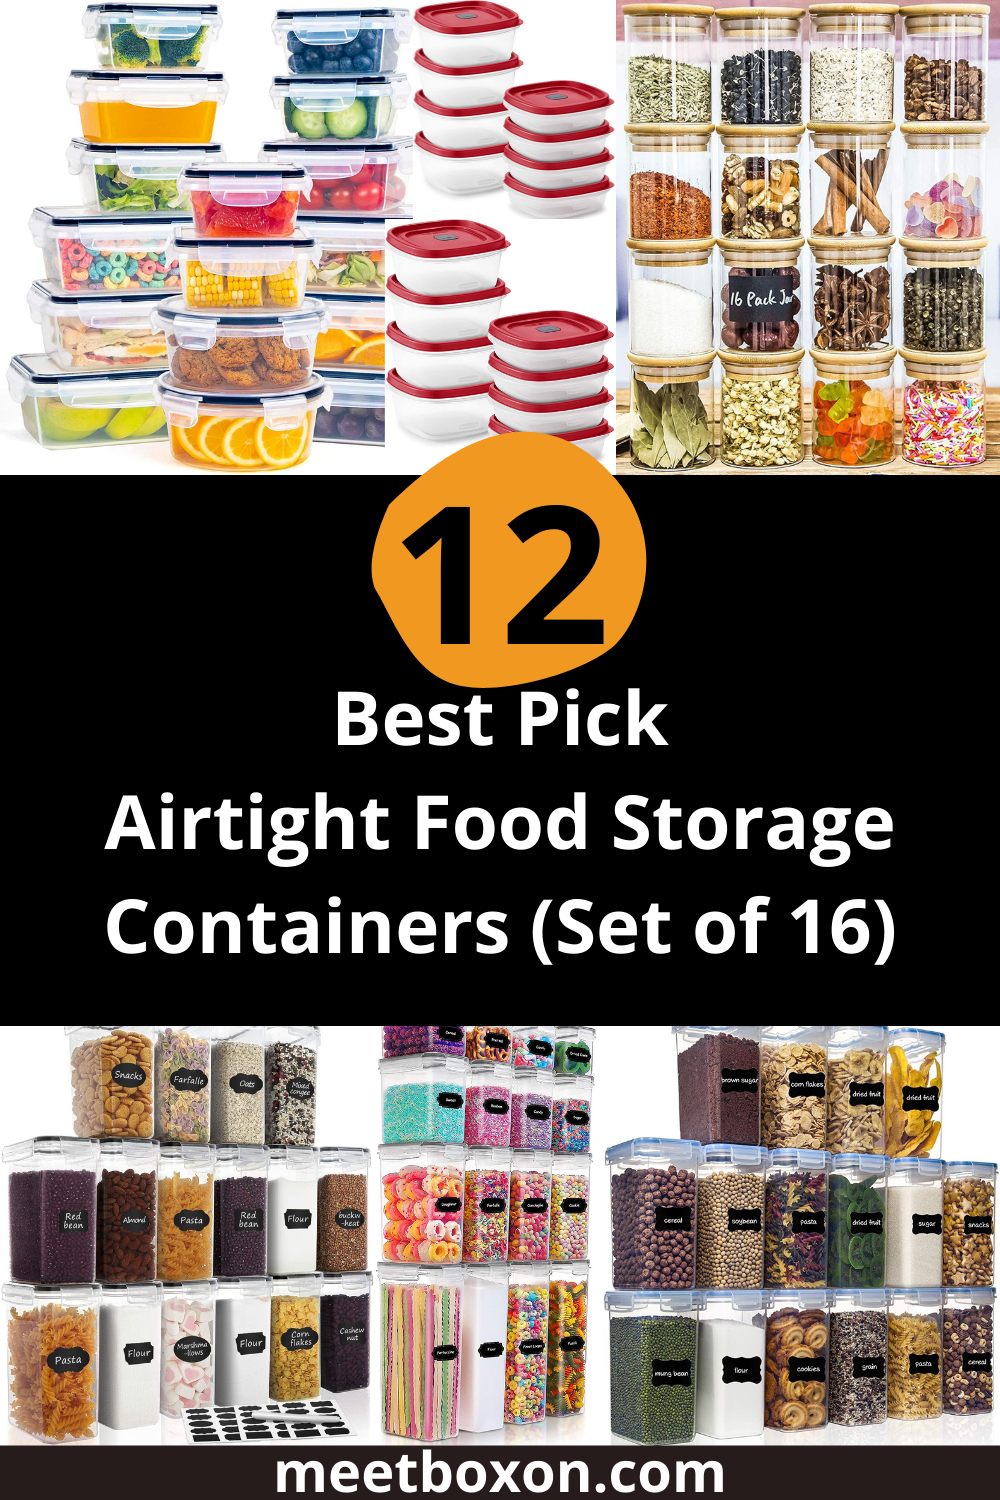 12 best pick airtight food storage containers (Set of 16)